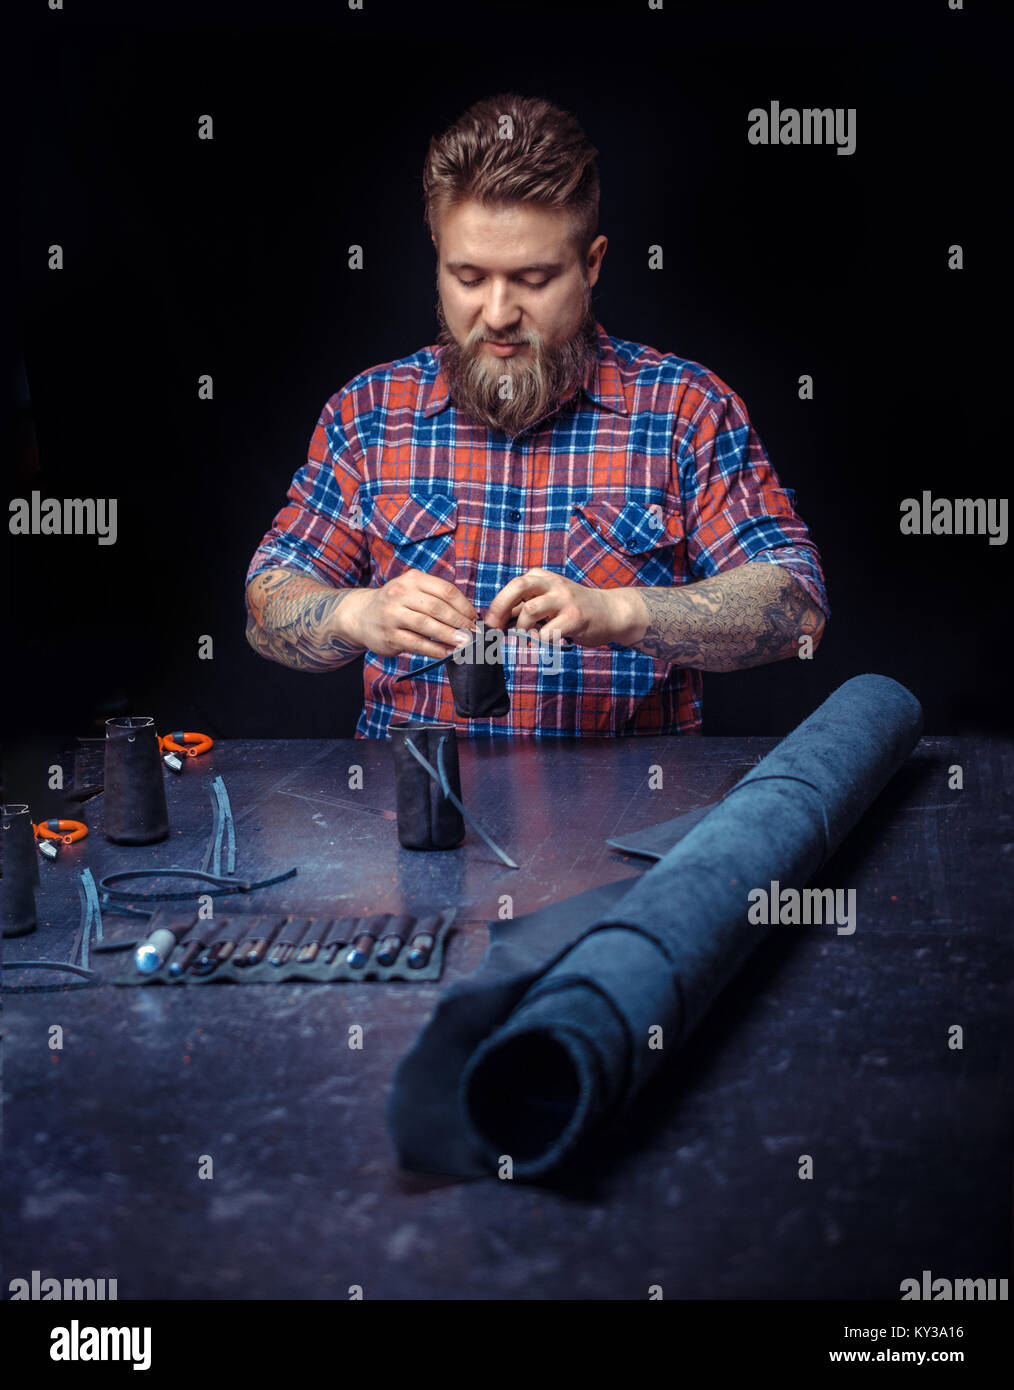 Leather cutter focusing on his work - Stock Image